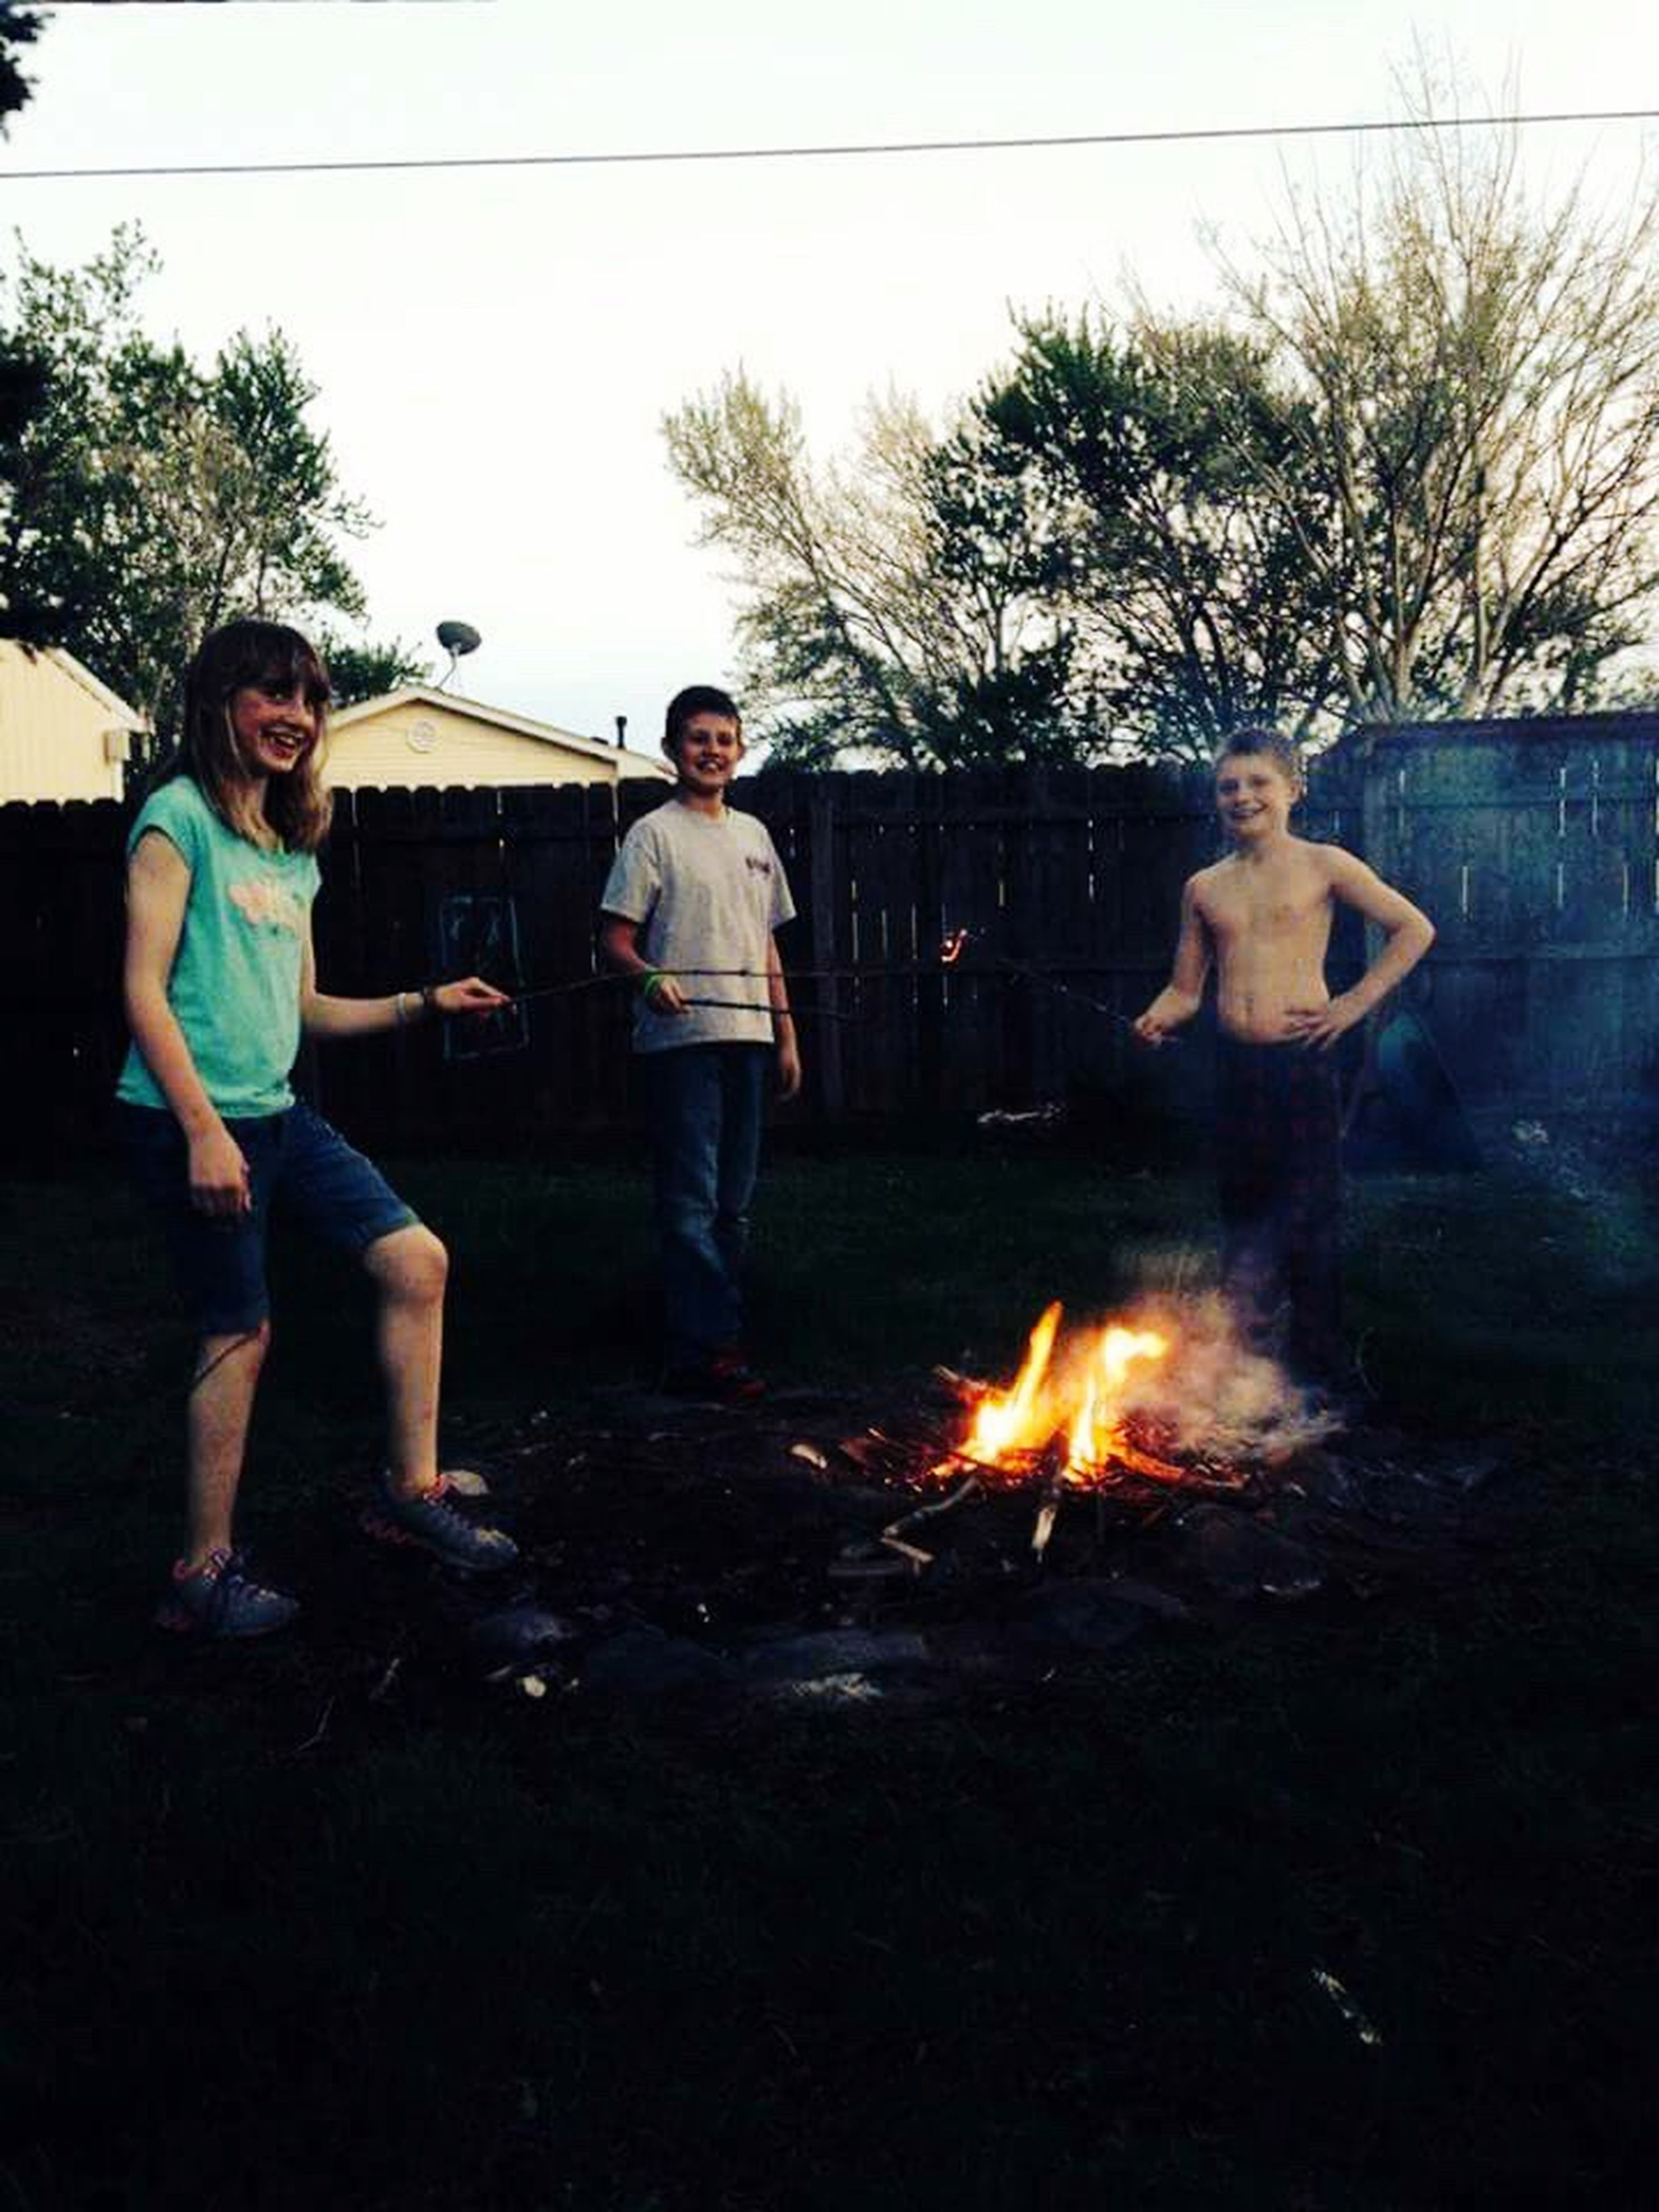 flame, leisure activity, lifestyles, clear sky, bonding, togetherness, burning, full length, vacations, friendship, field, fire - natural phenomenon, outdoors, casual clothing, person, day